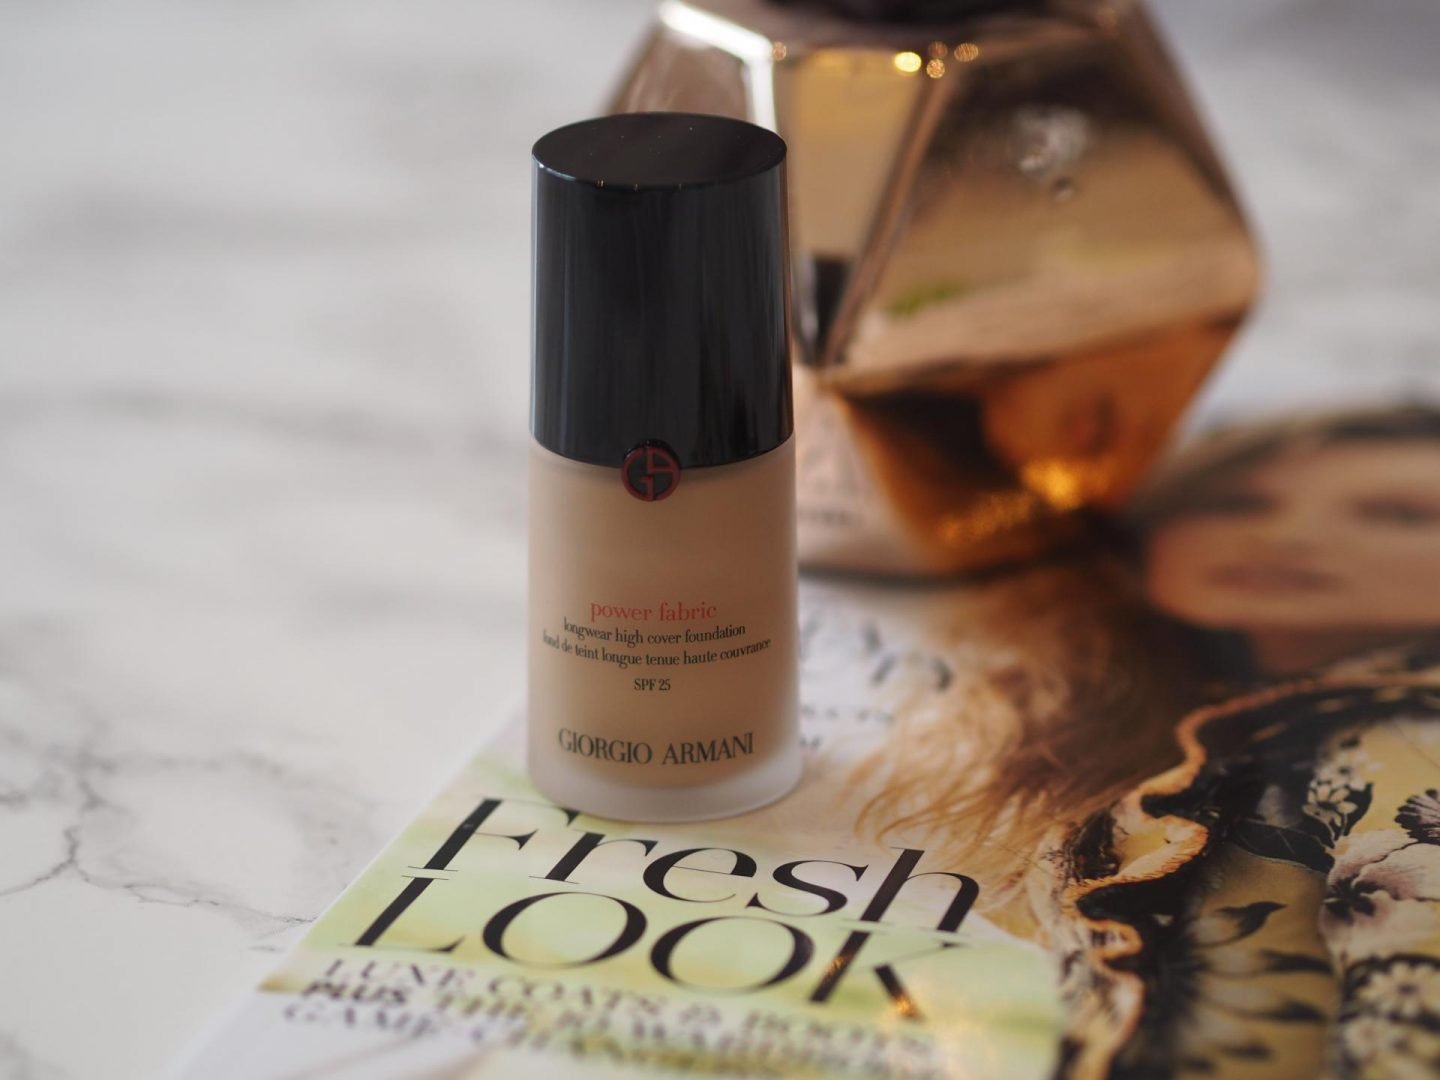 Best Long-Lasting Foundations - Products: Giorgio Armani Power Fabric Longwear High Cover Foundation SPF 25